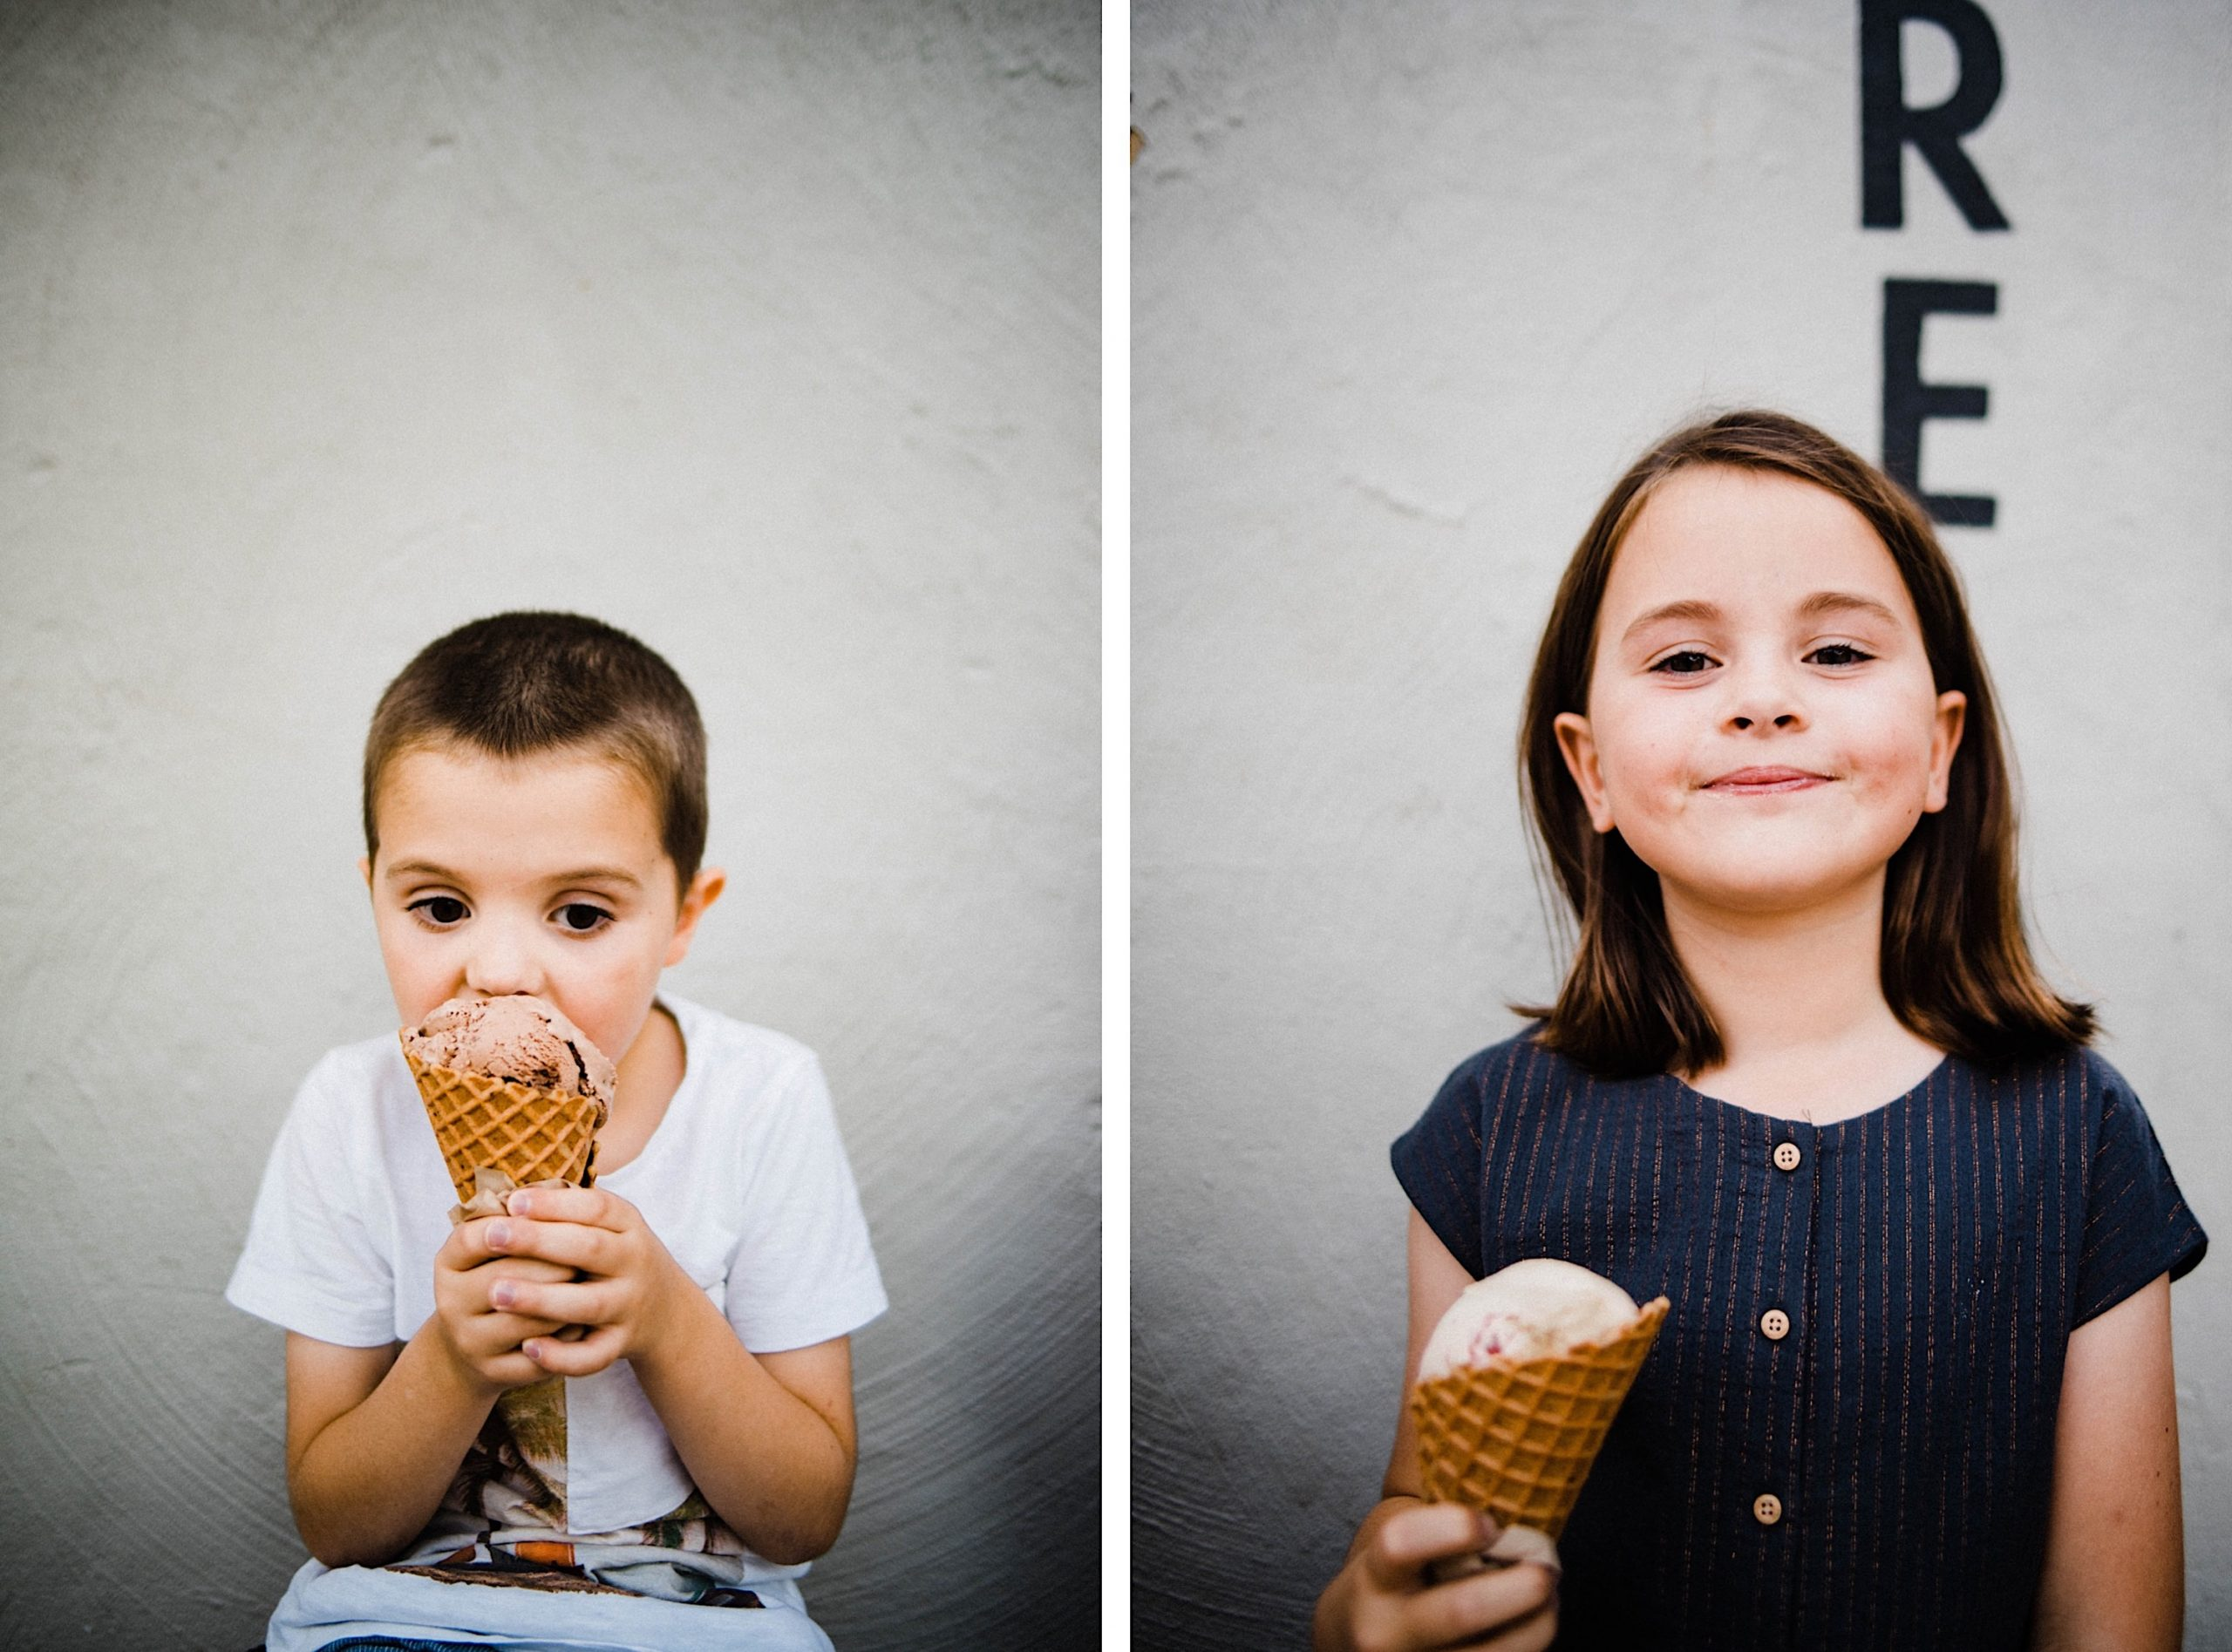 Two photos, side-by-side, of a brother and sister eating ice cream at Kuld Creamery in Fremantle.